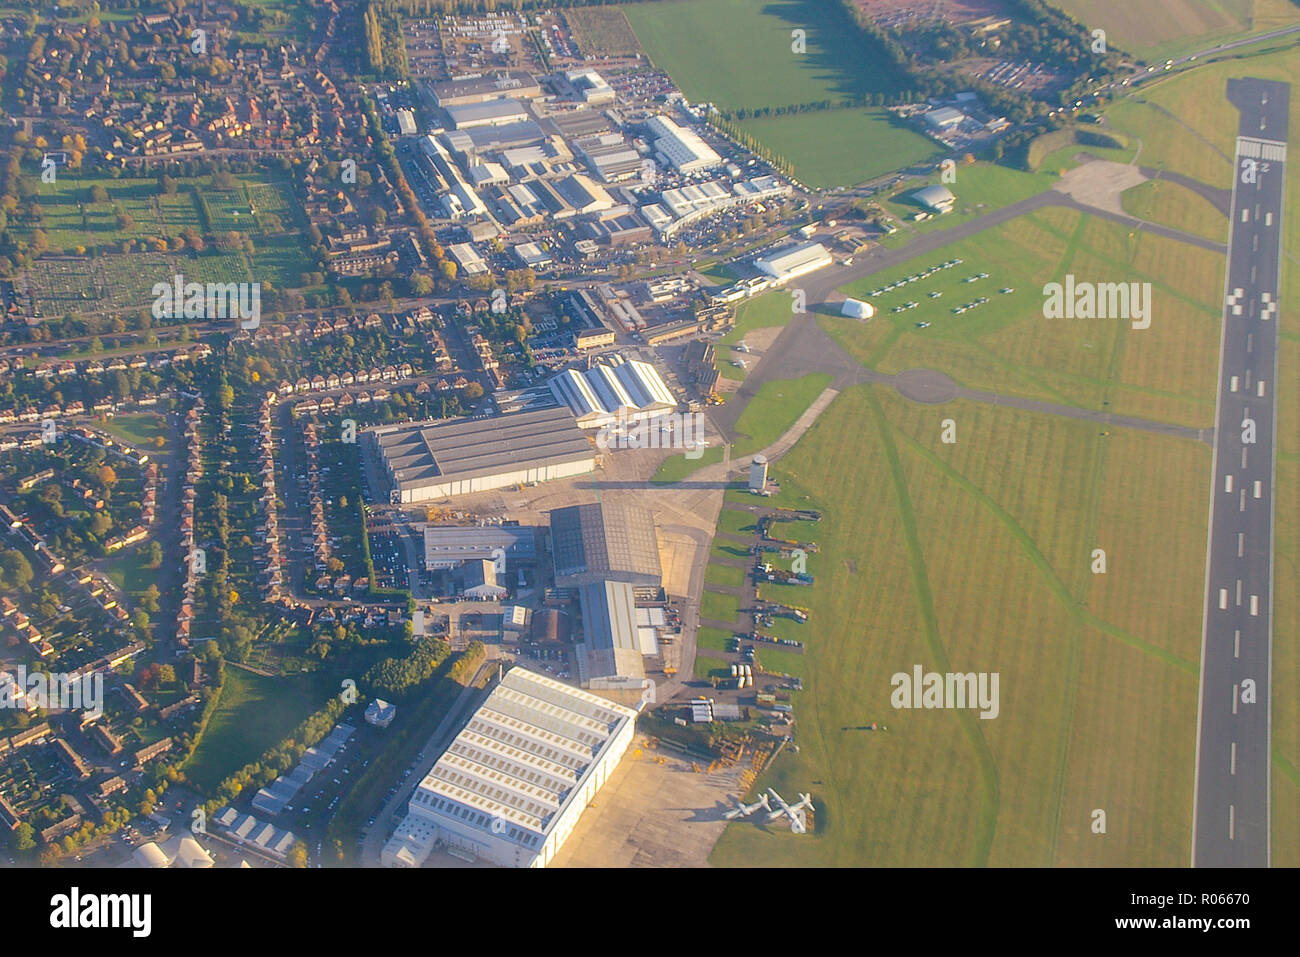 marshall-of-cambridge-viewed-from-a-plane-flying-overhead-marshall-aerospace-and-defence-group-cambridge-airport-aerial-view-space-for-copy-R06670.jpg